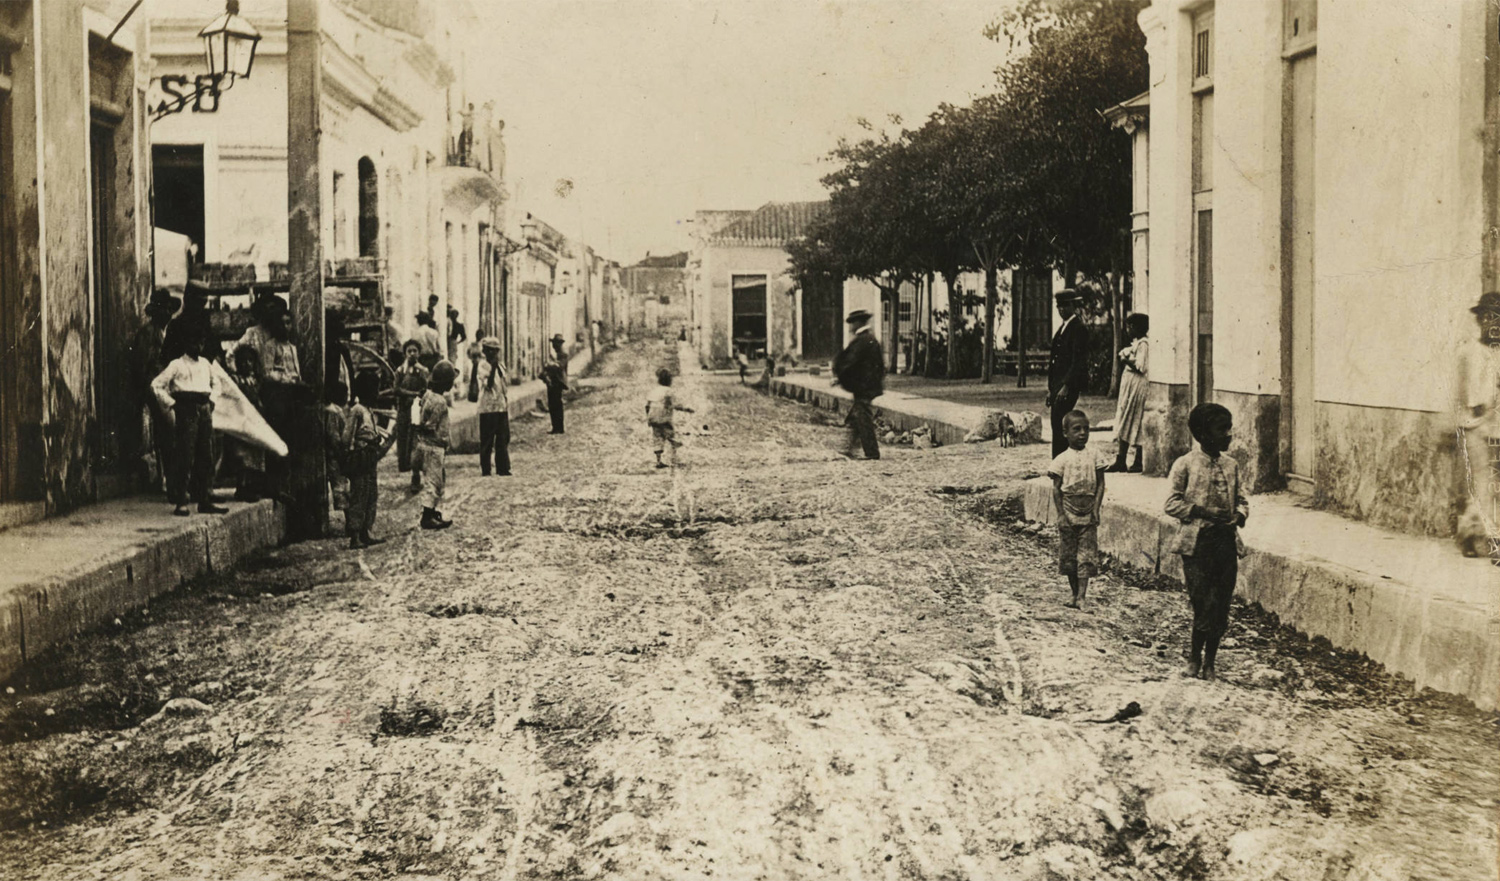 """Street view in Havana's city center, today called """"La Habana Vieja"""", Calle Vives, 1899. Found in the Cuban Photograph Collection by the  University of Miami Libraries . Image Public Domain."""